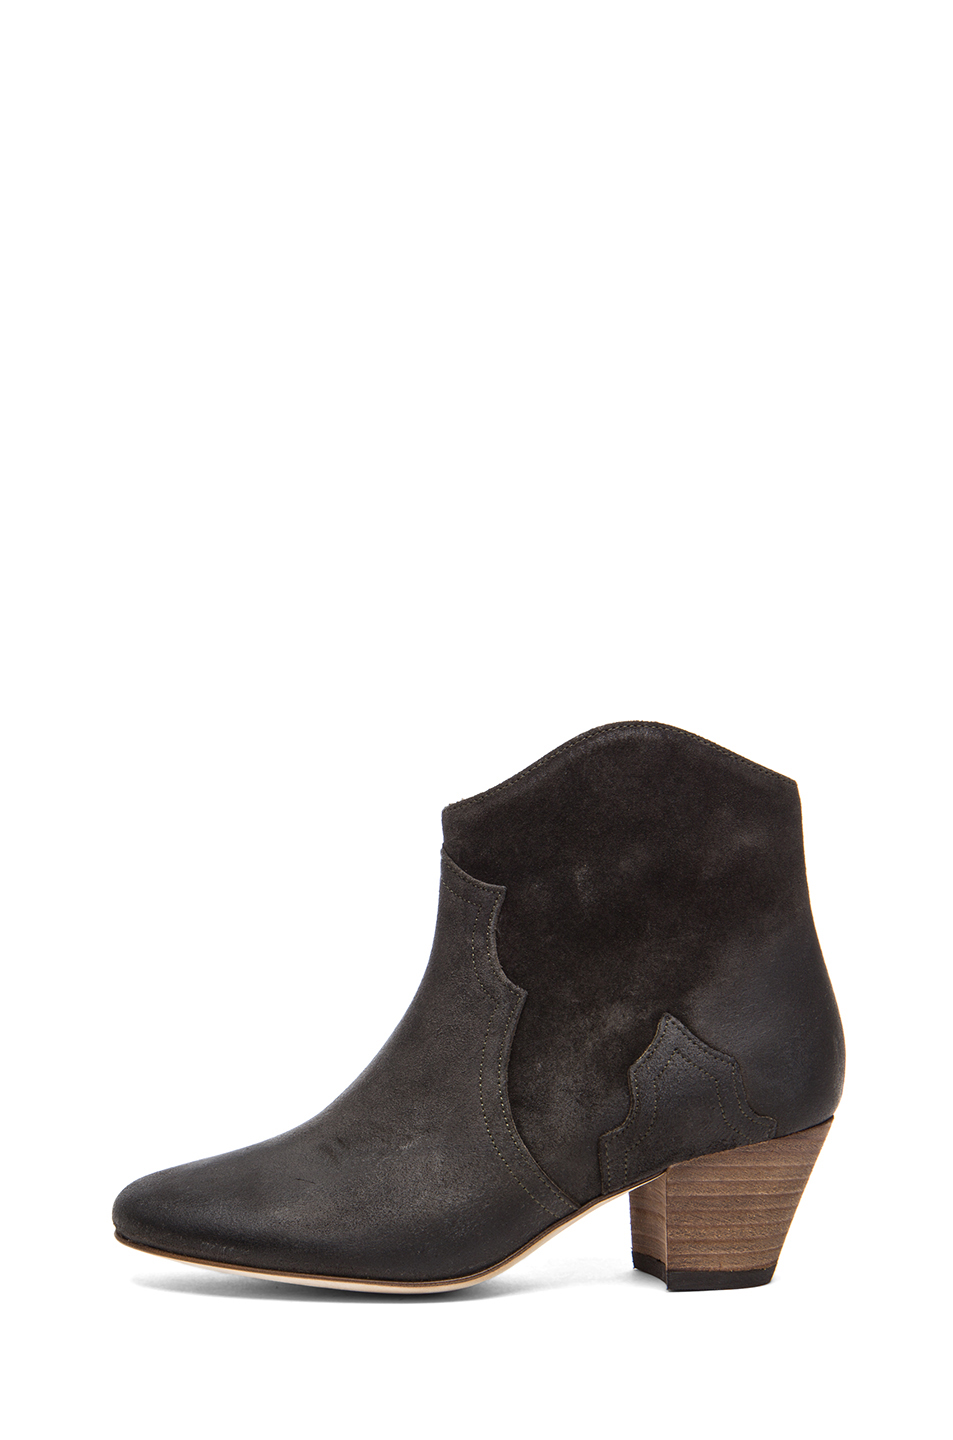 Isabel Marant|Dicker Calfskin Velvet Leather Boot in Faded Black